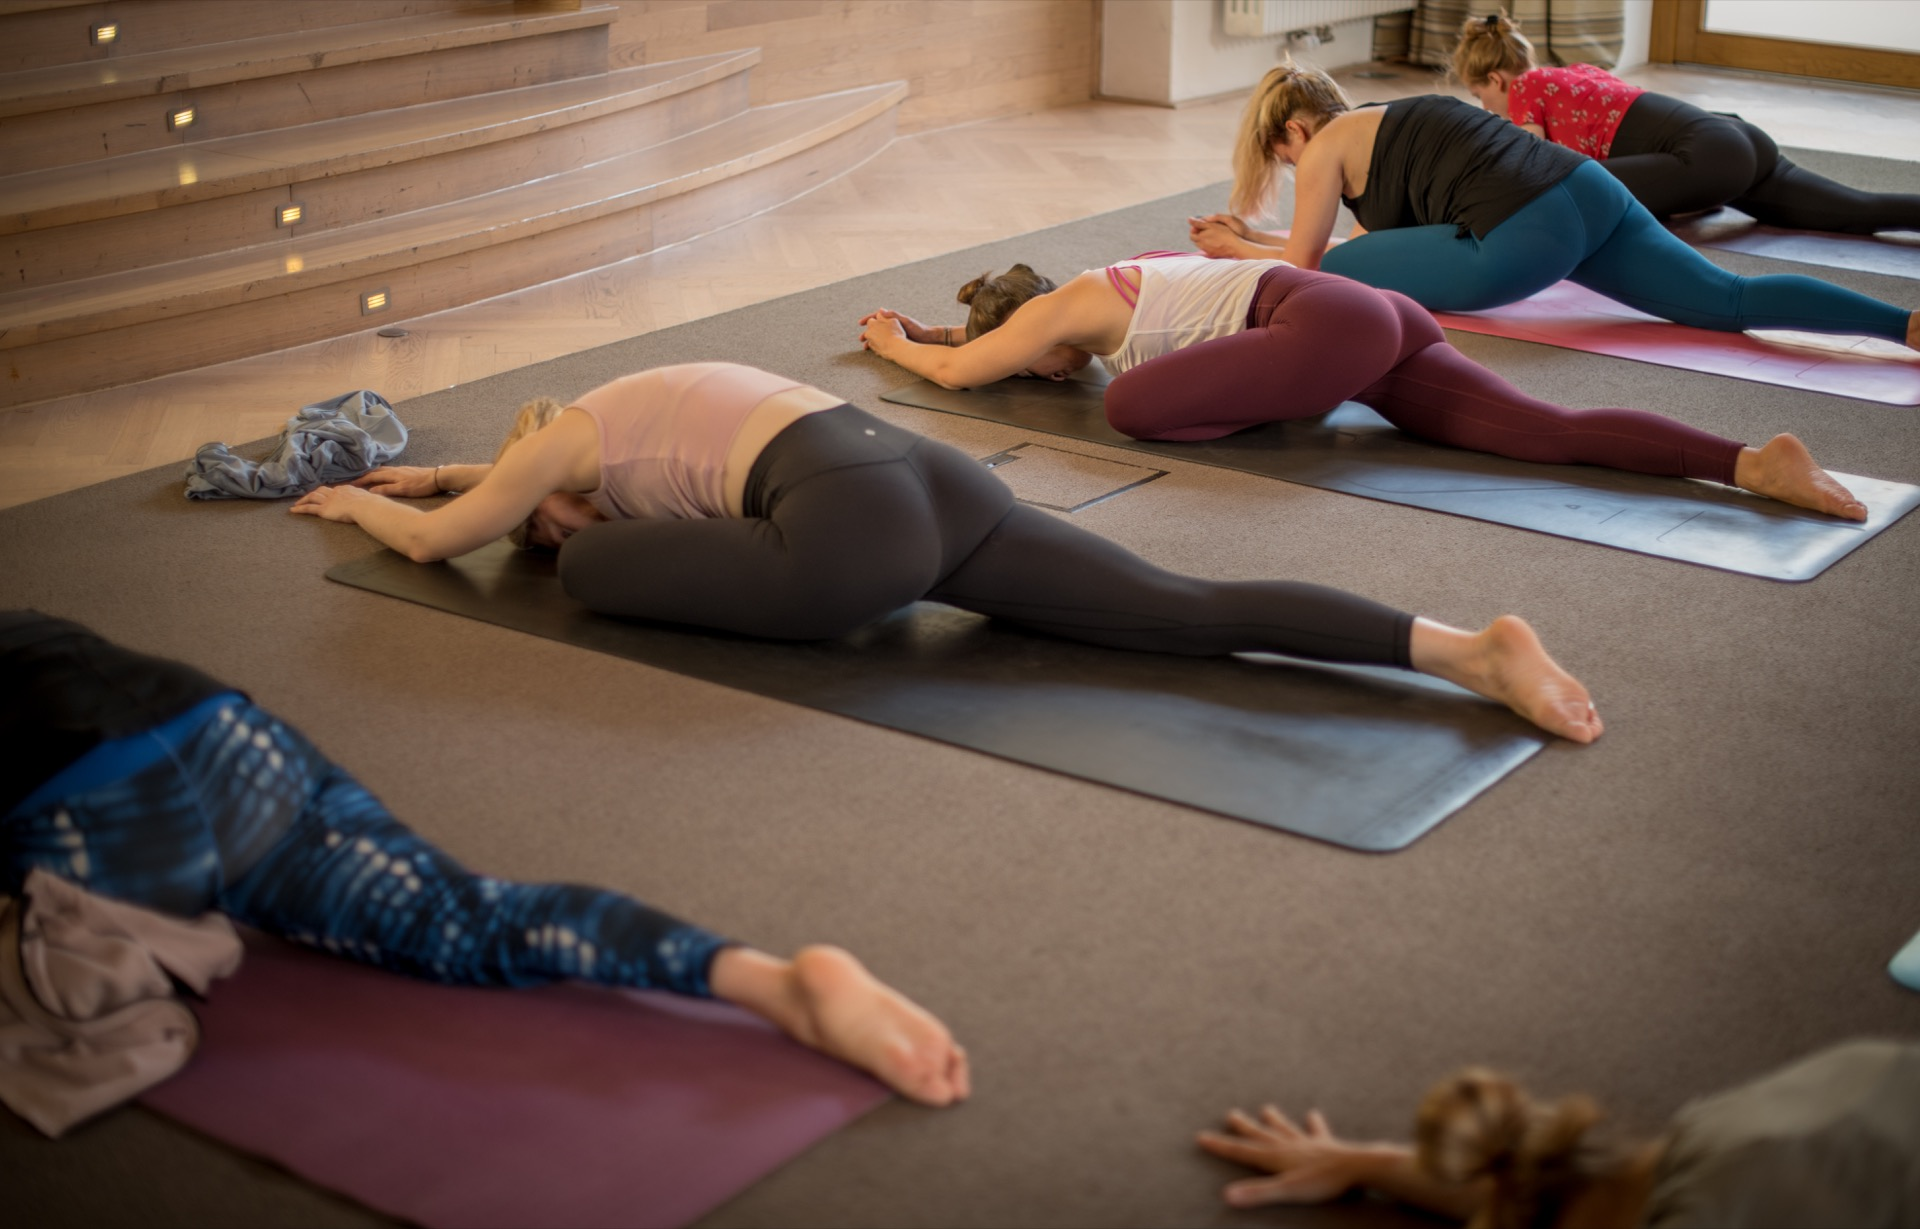 Hie-Kim-Friends-2019-Yoga-Retreat-Alina-Matis-Photography-060 - Hie Kim Yoga - Yoga Retreat - Yoga Workshops und Reisen